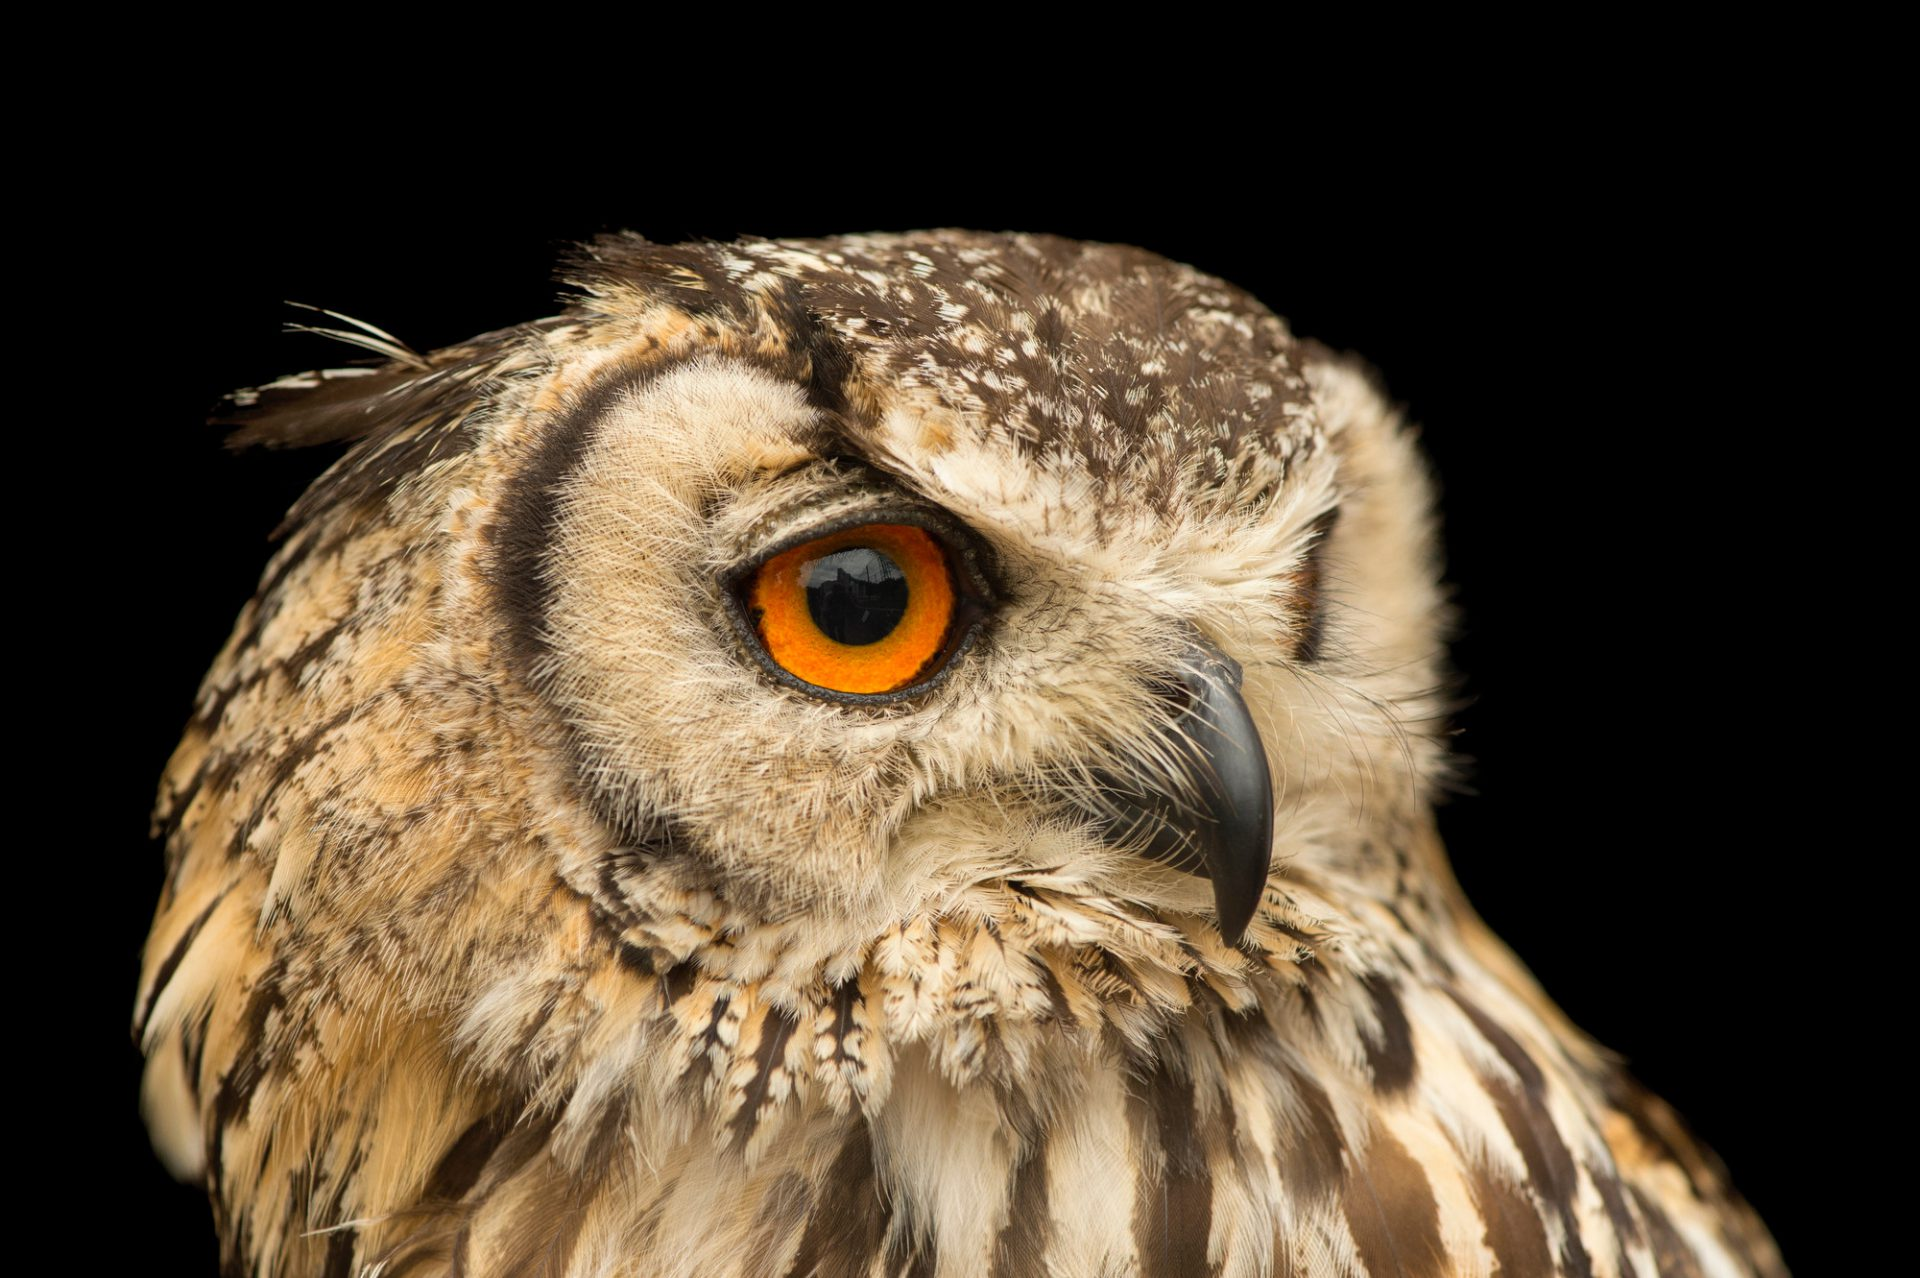 Photo: A rock eagle-owl (Bubo bengalensis) at the Plzen Zoo in the Czech Republic.